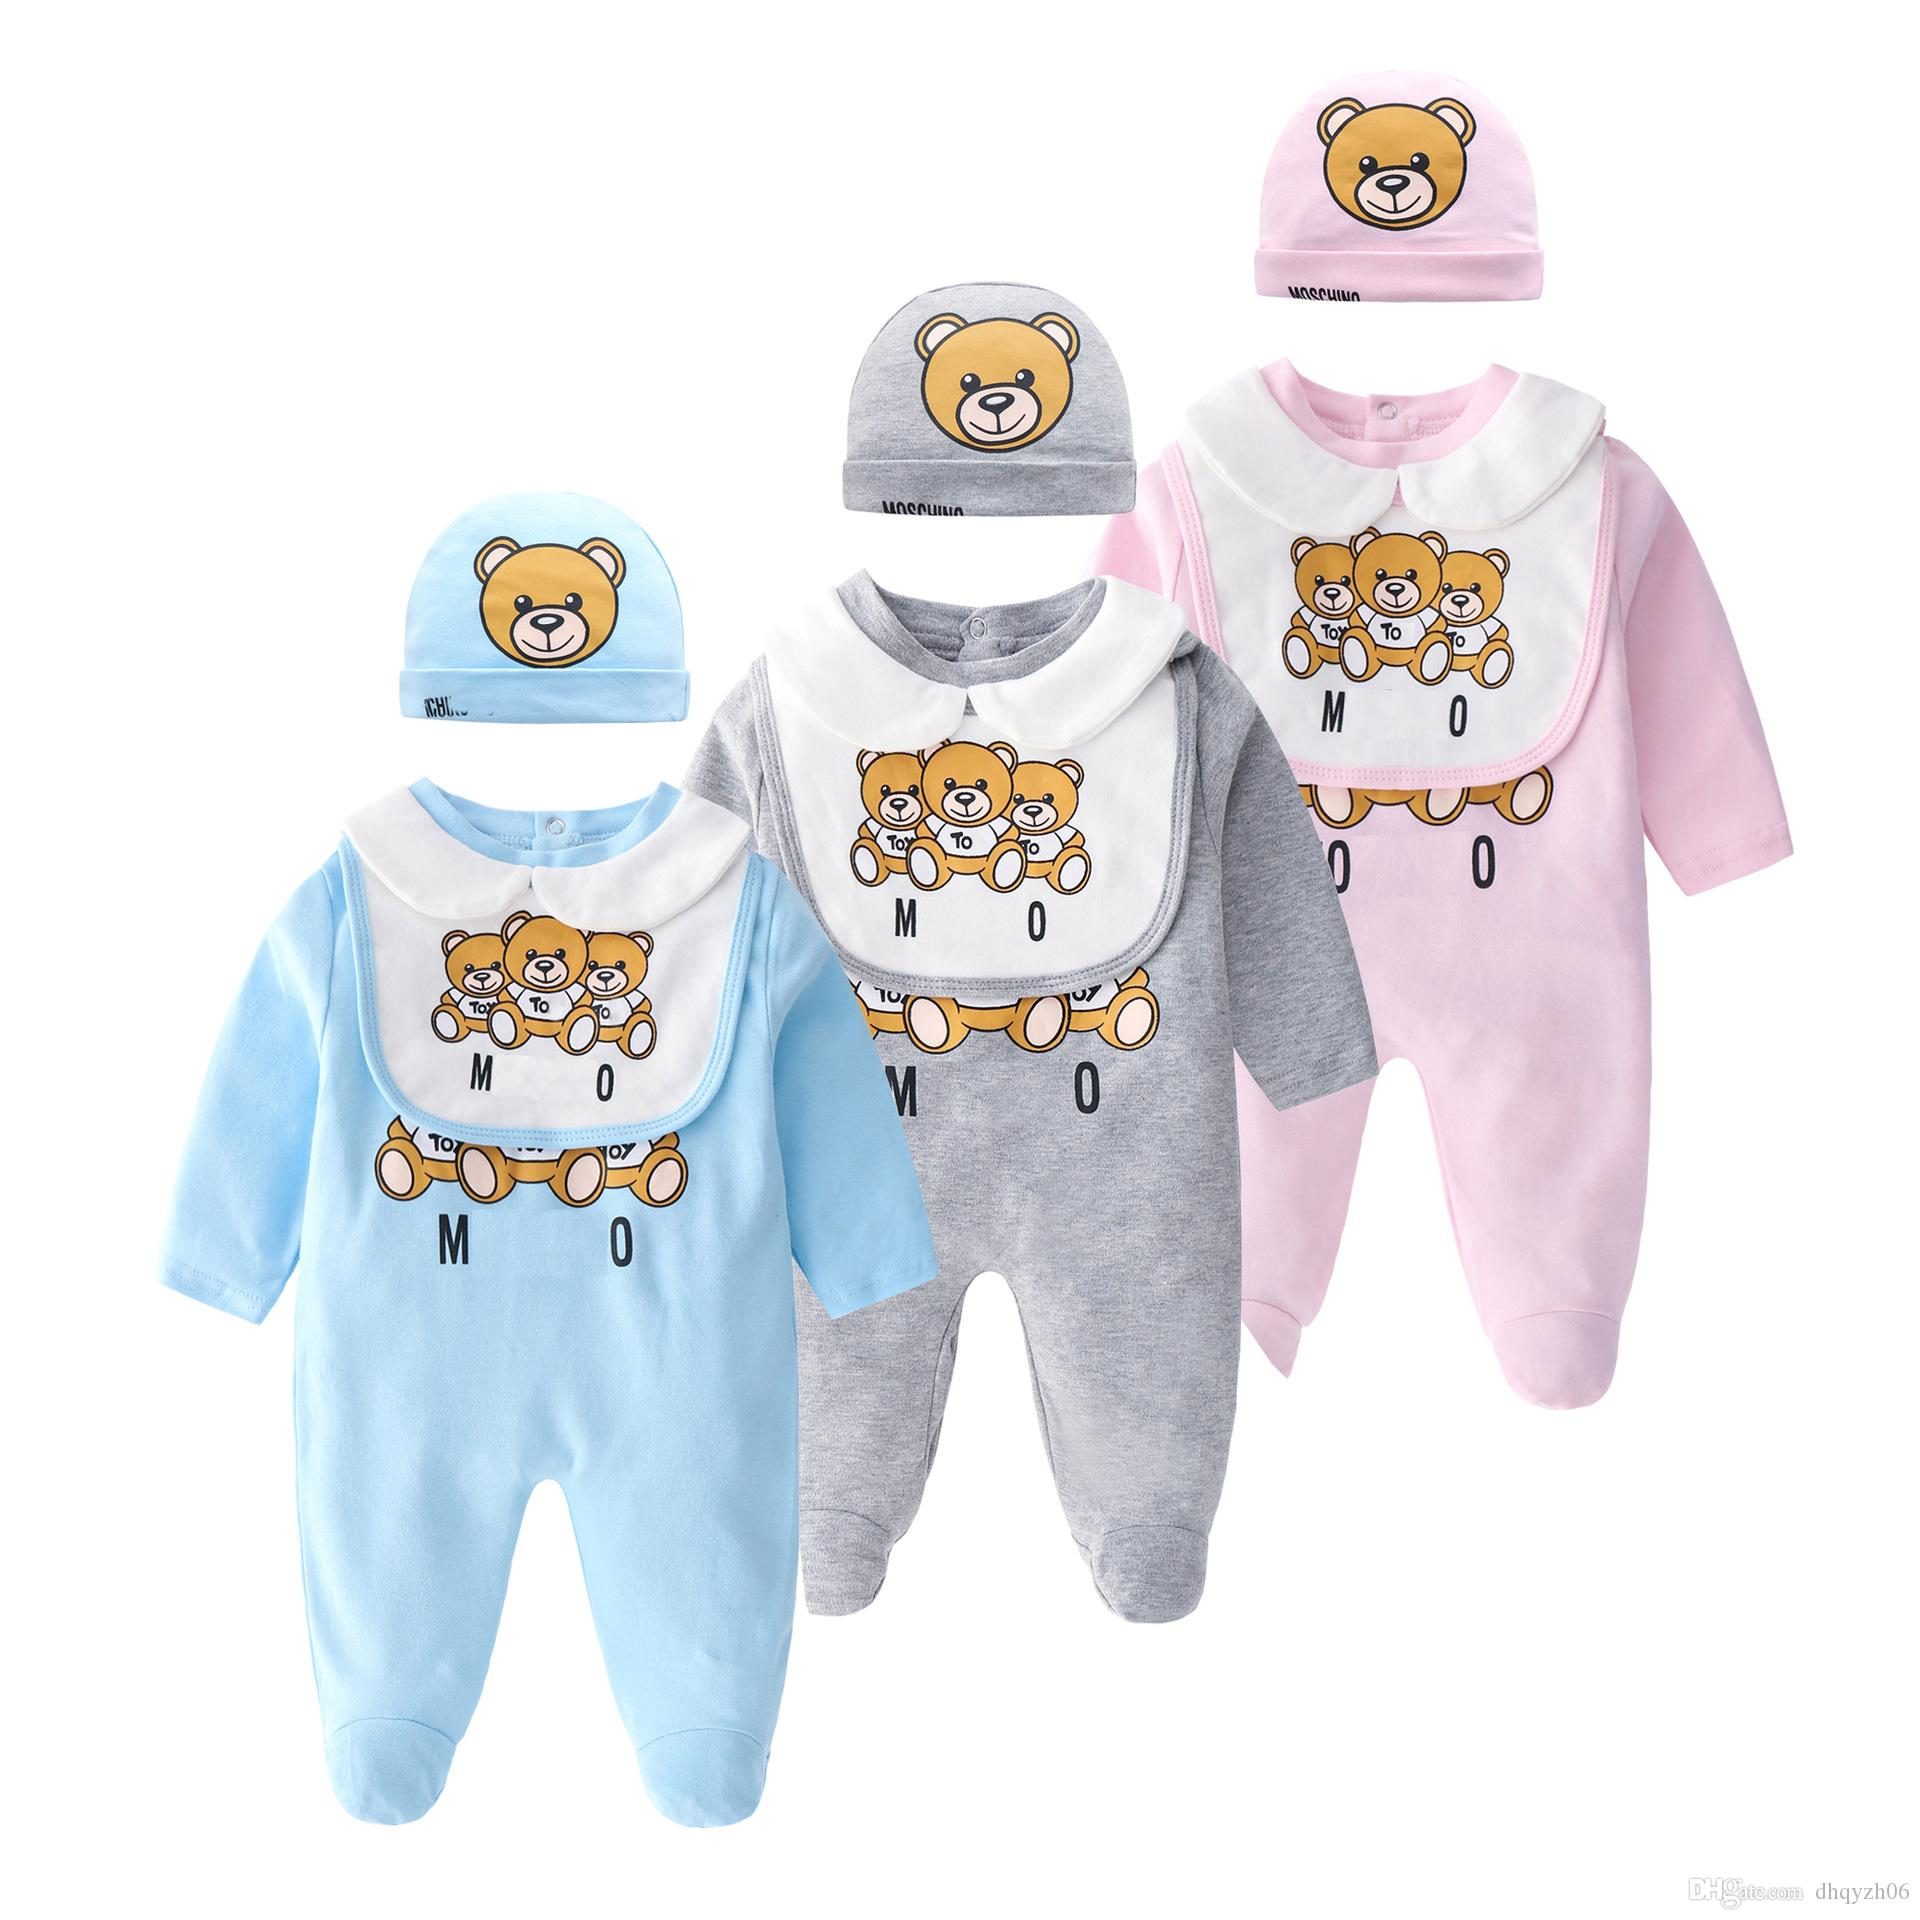 High quality spring baby long sleeve romper baby onesies cotton baby clothes hooded bear pattern design 3 color free shipping